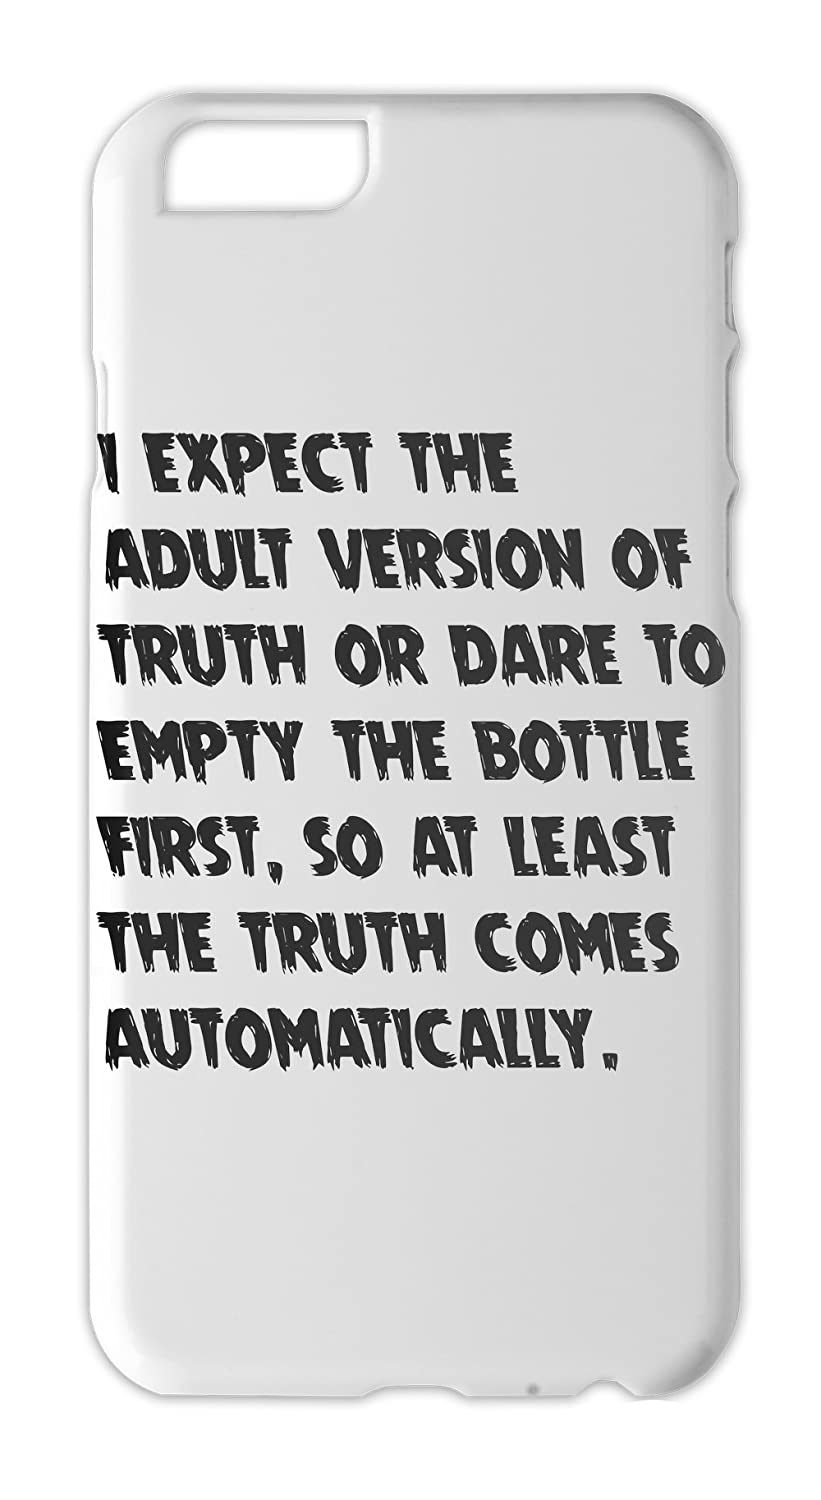 Truth or dare photos adult style right